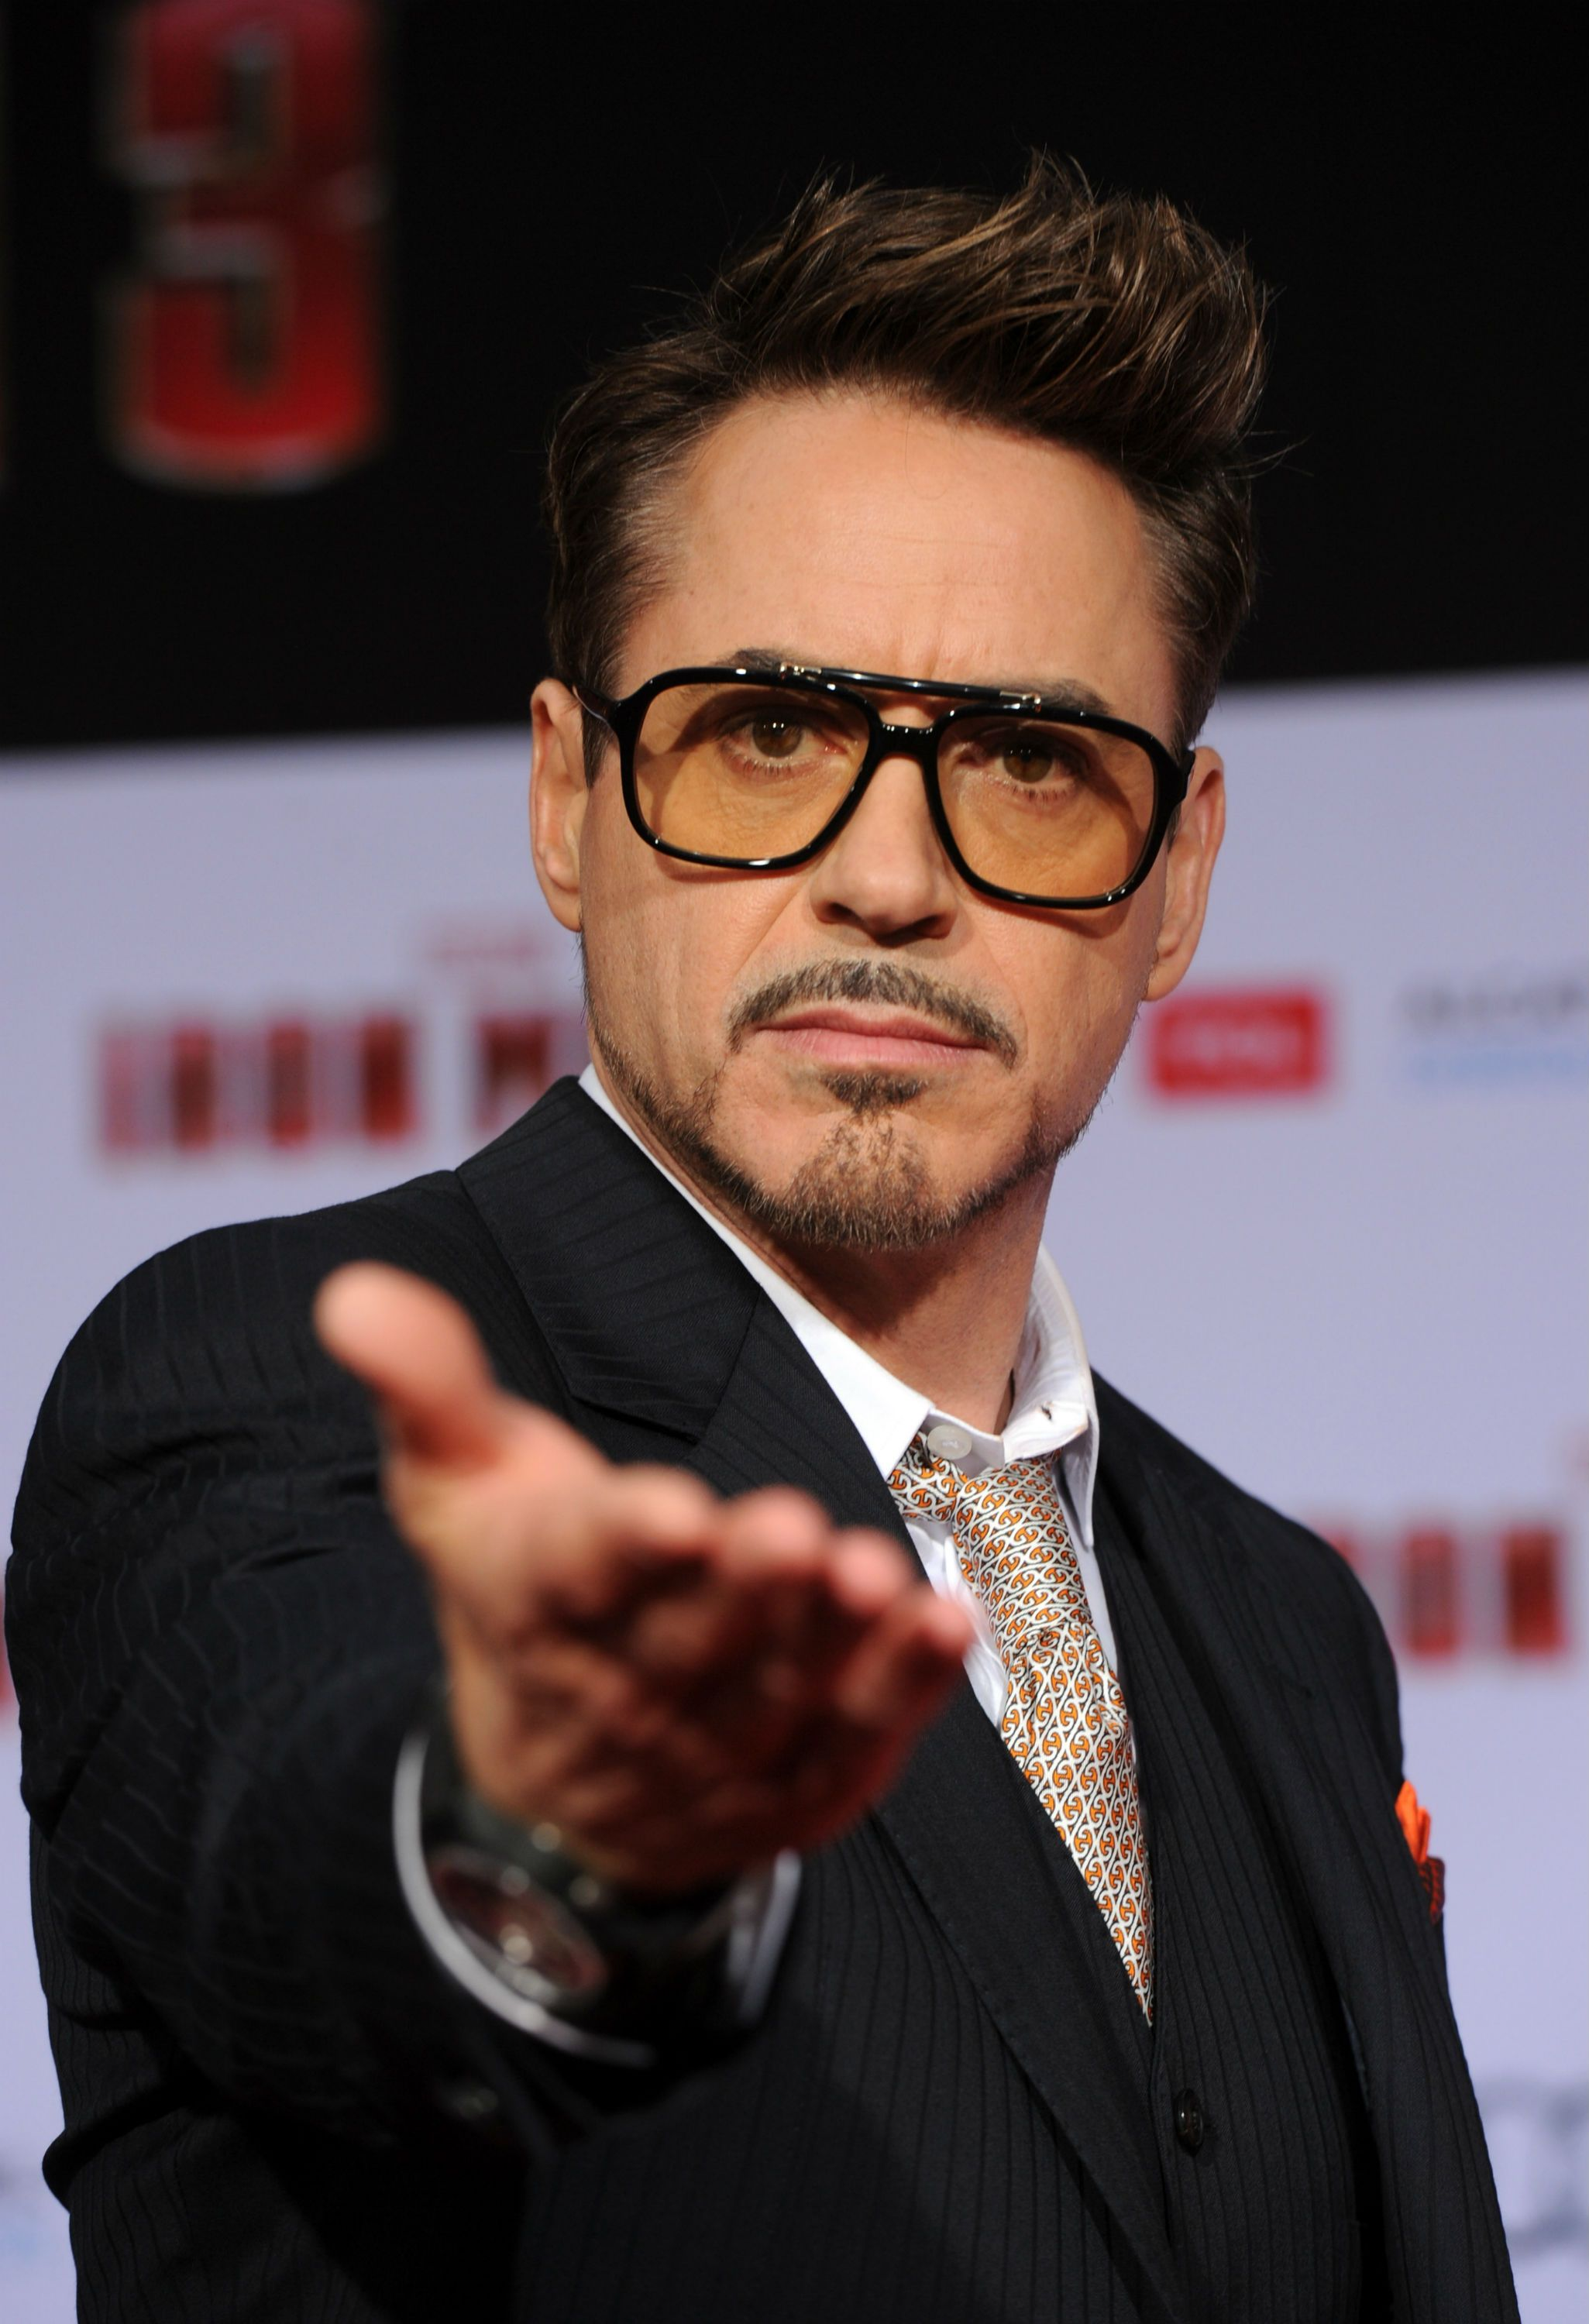 Marvel's Robert Downey Jr recalls getting arrested at Disneyland